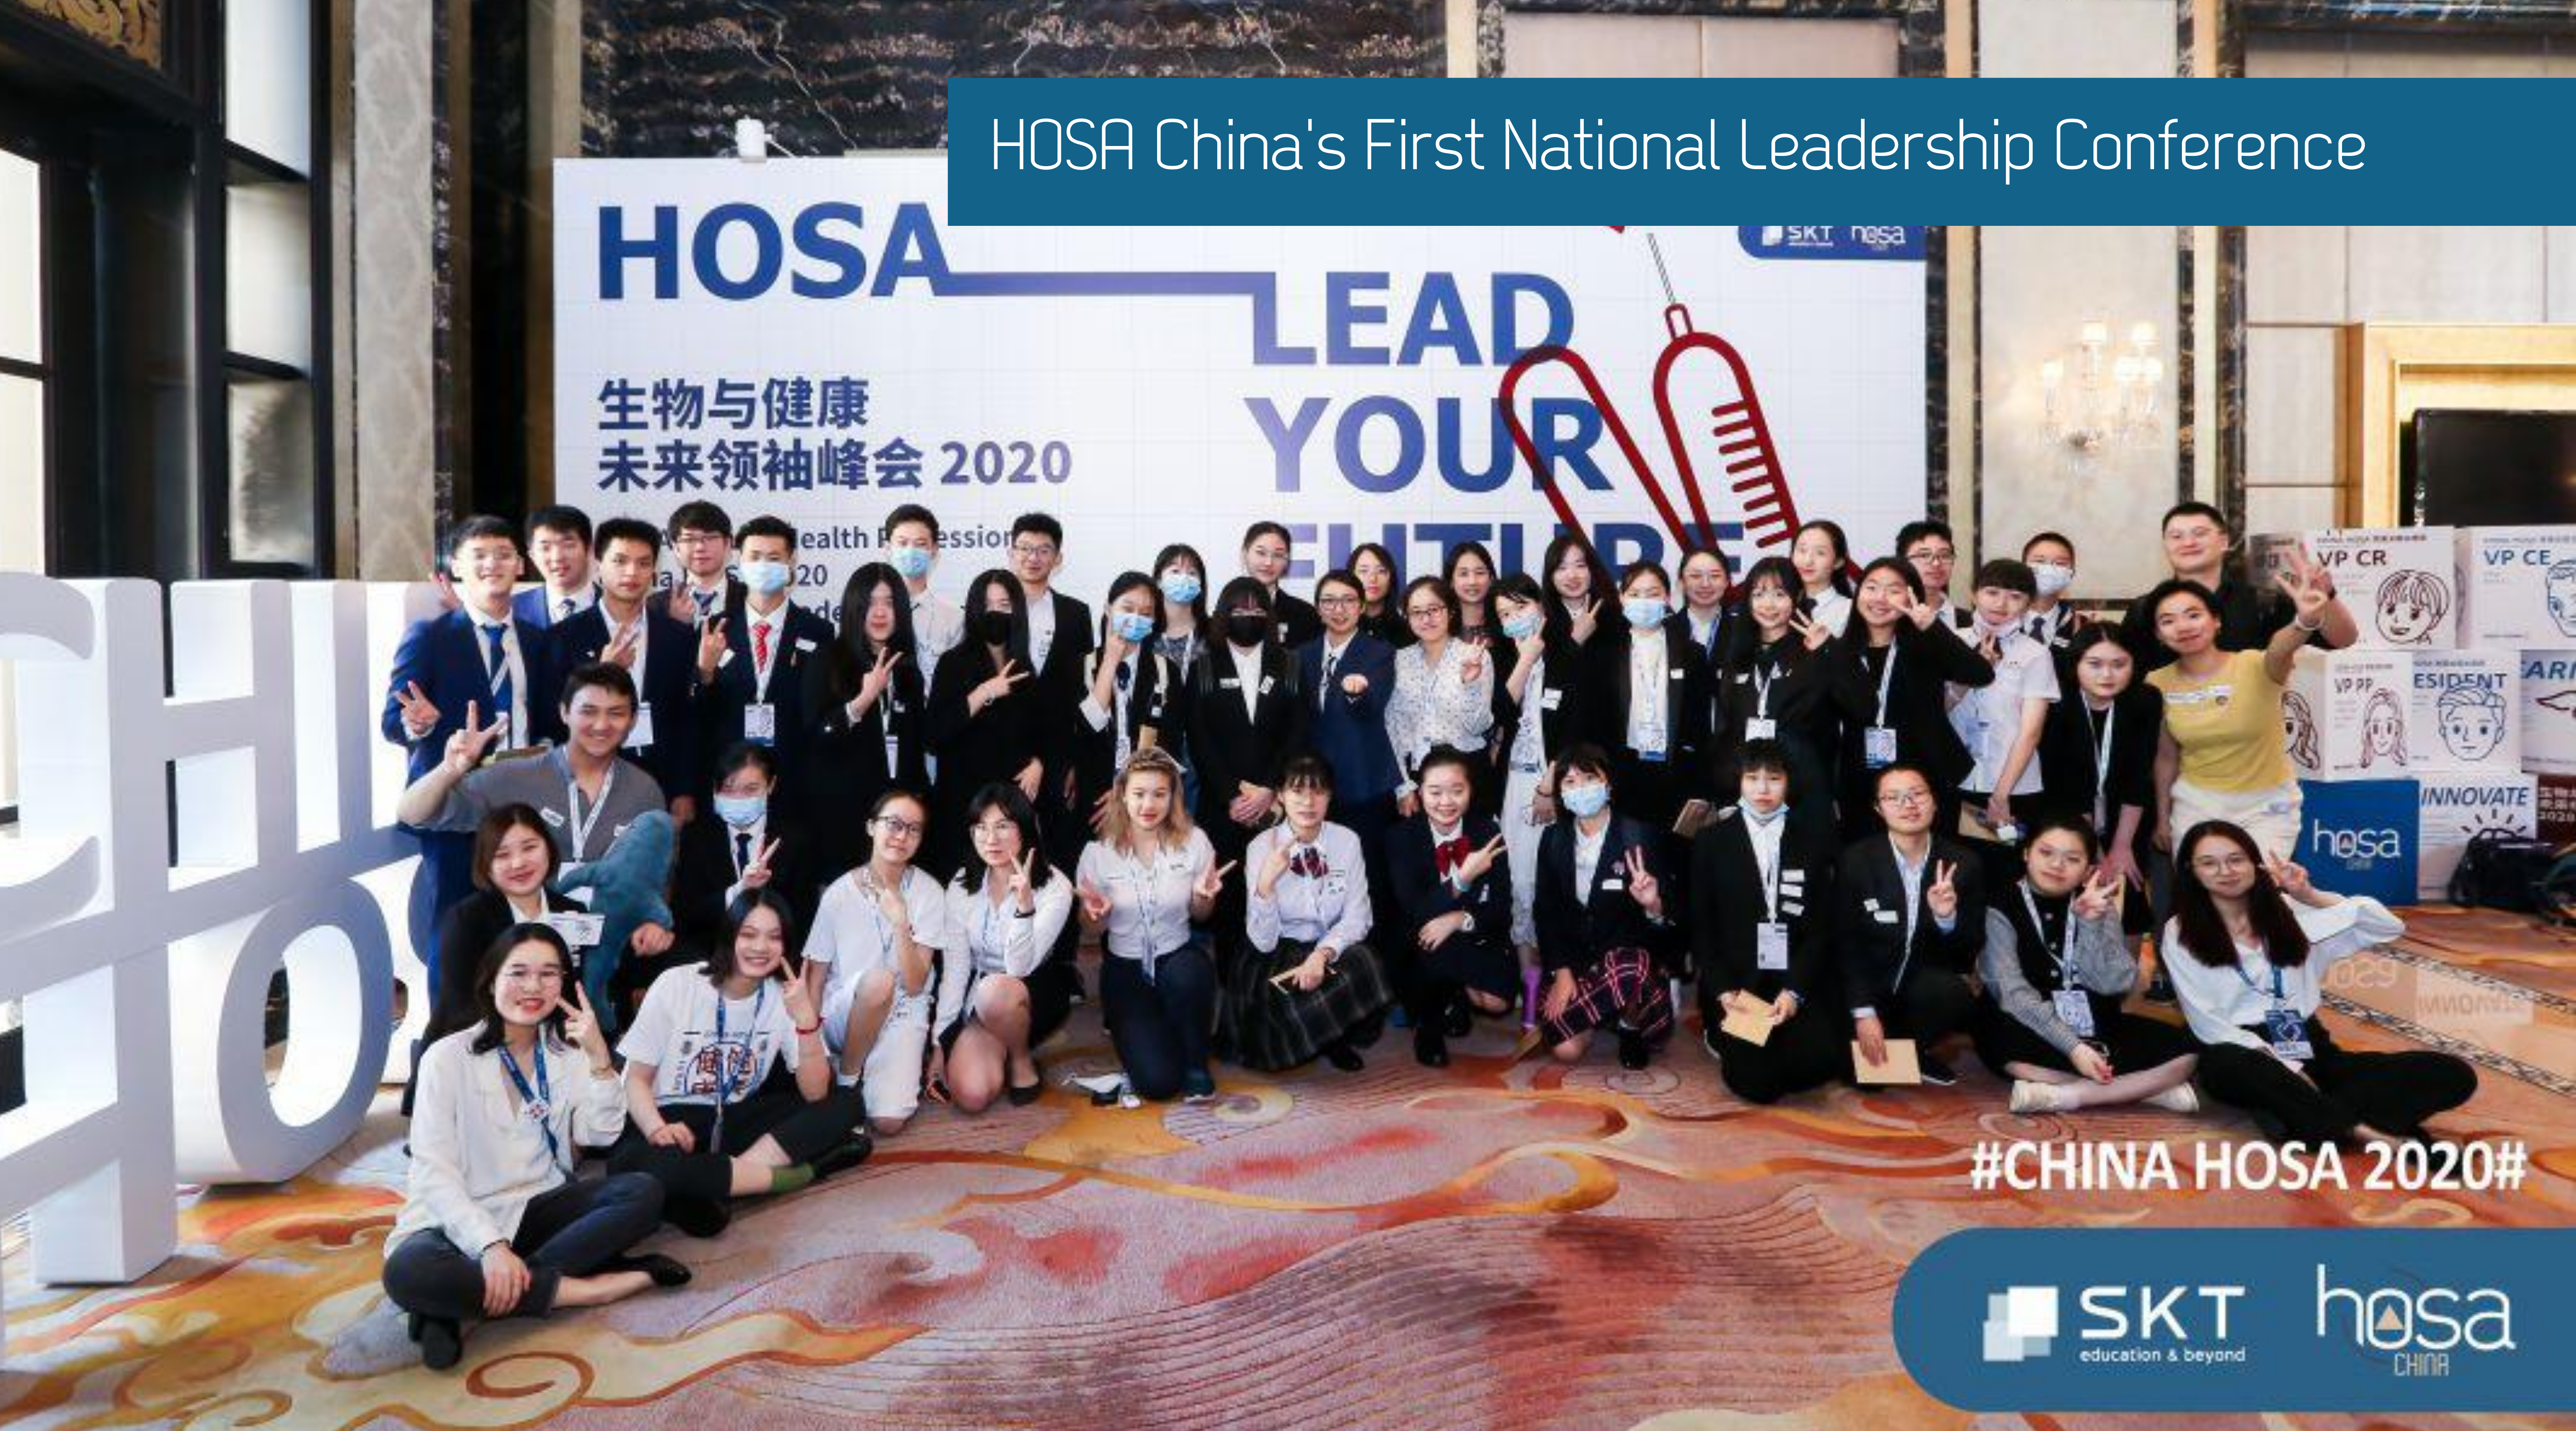 China HOSA's First National Leadership Conference